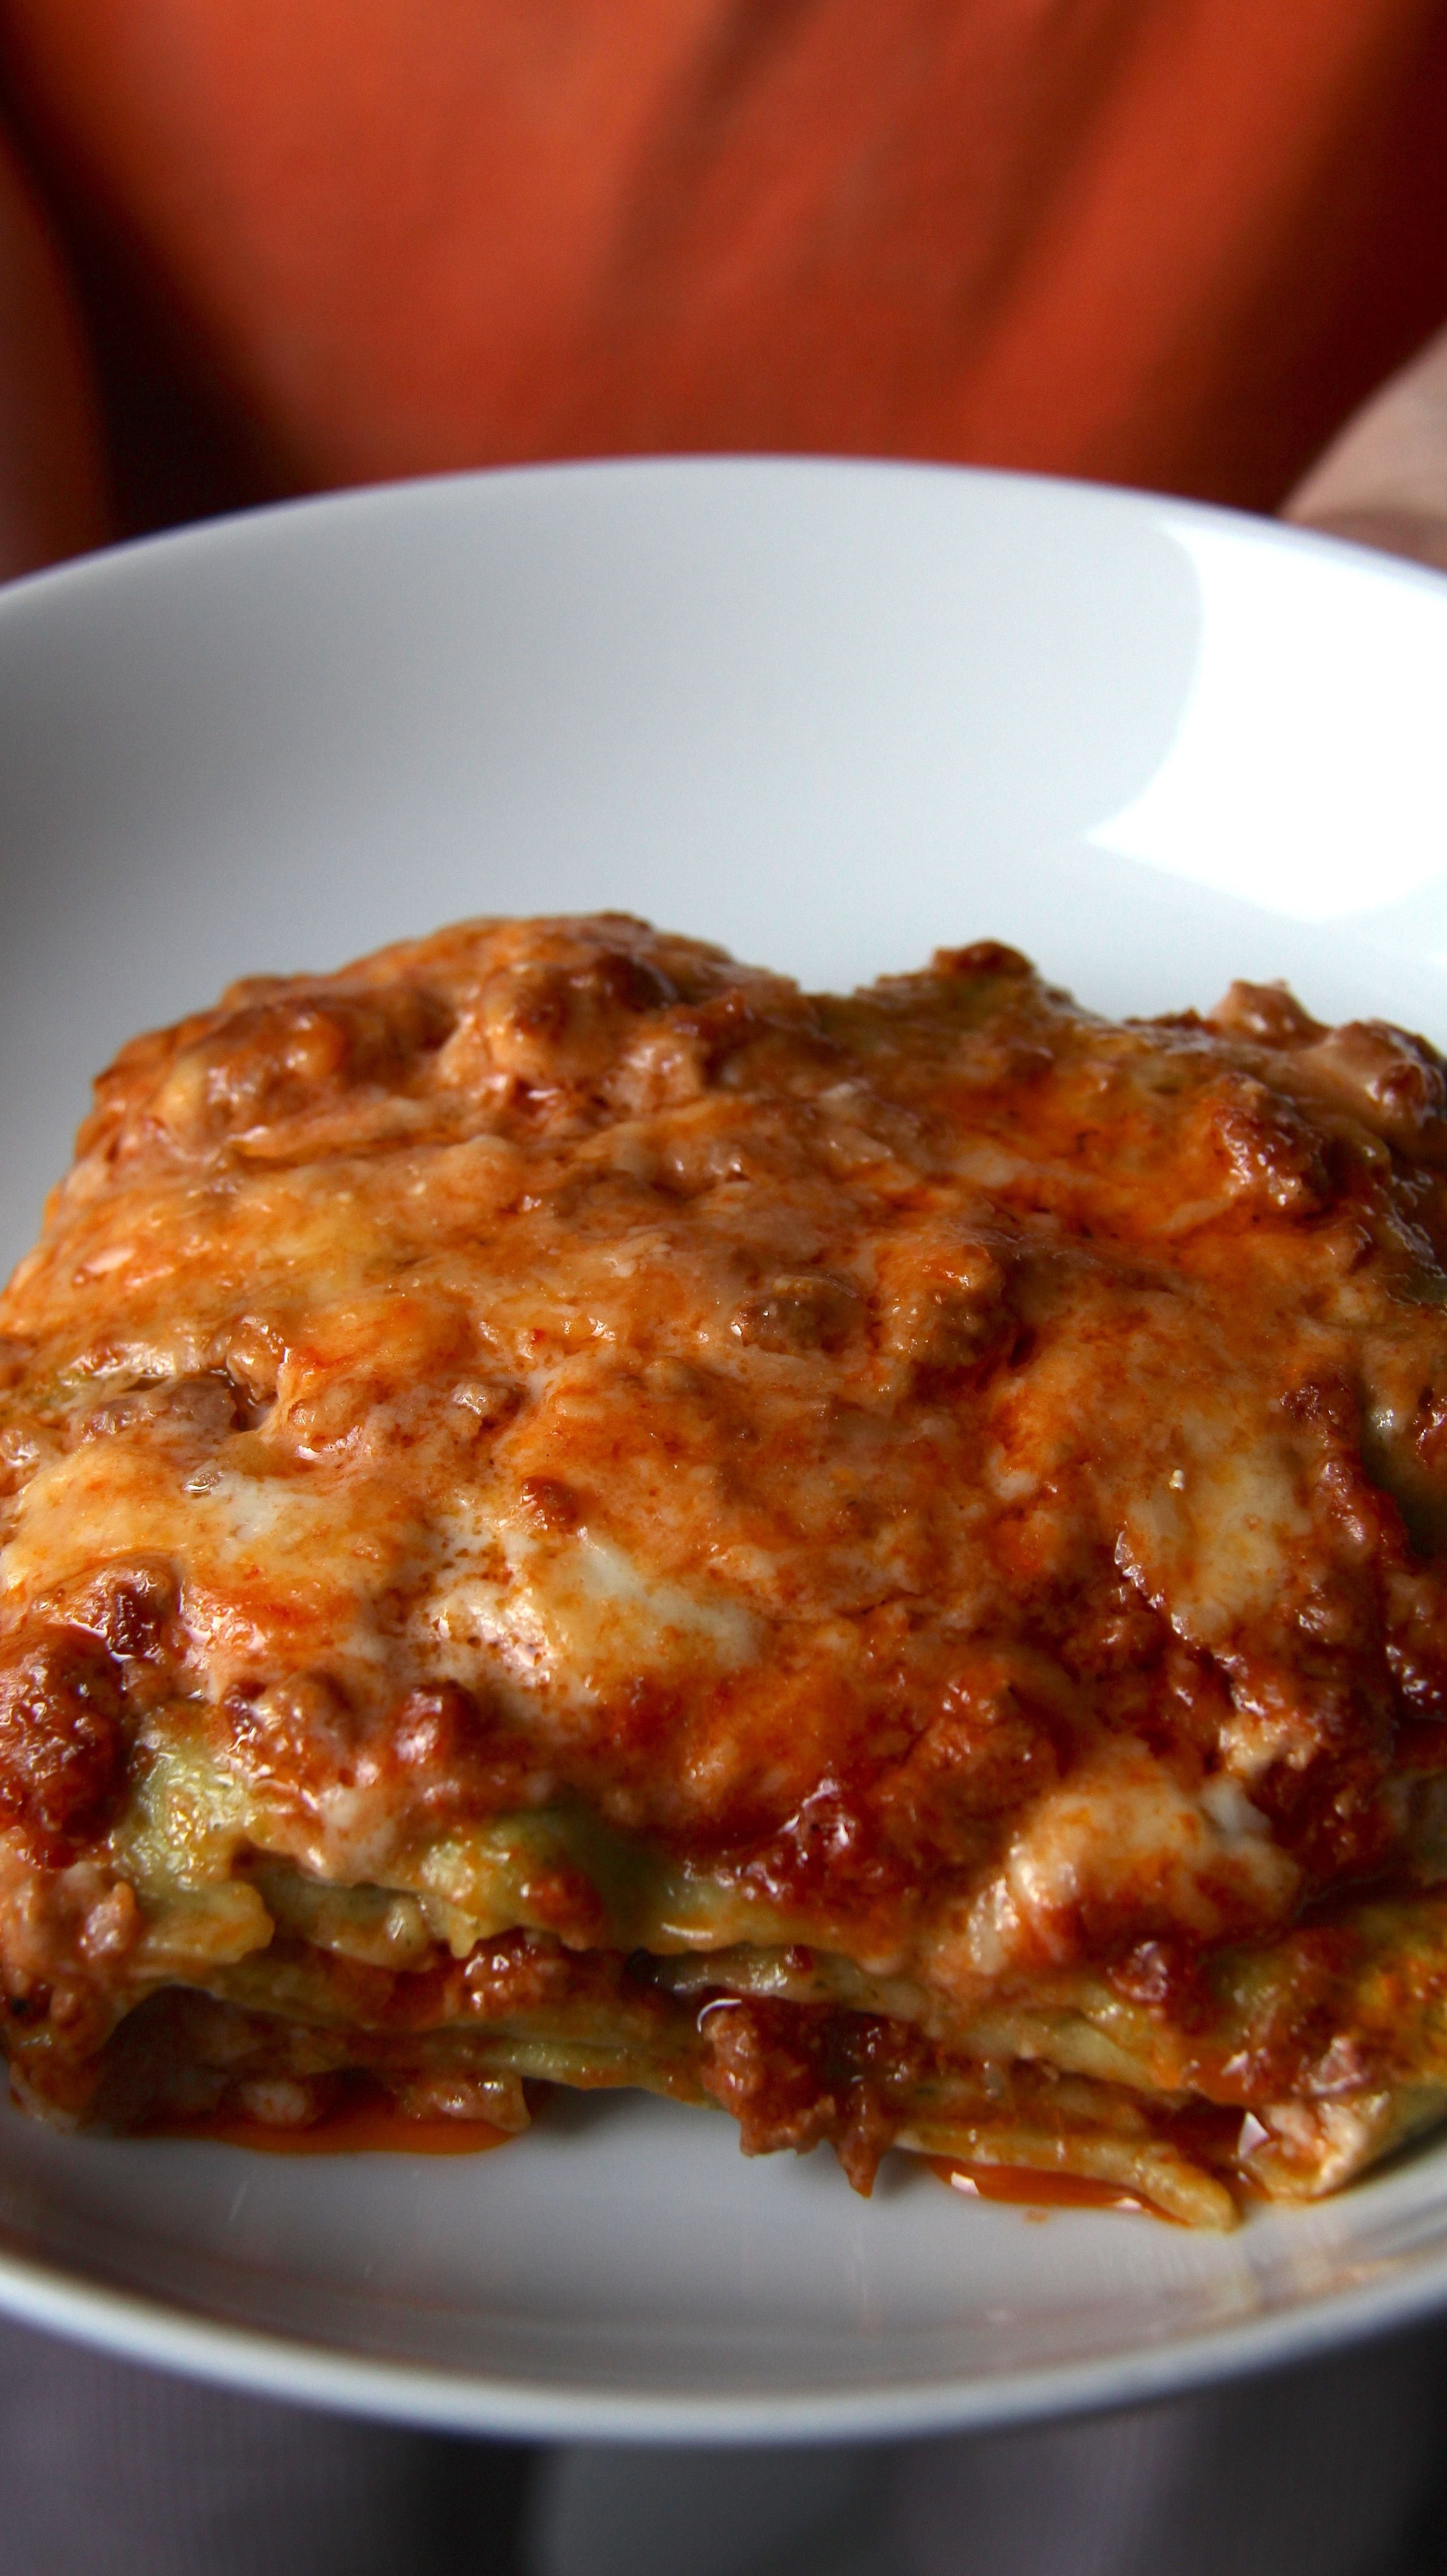 061afac291126522a136342558bfd2a3 - Ricette Bolognesi